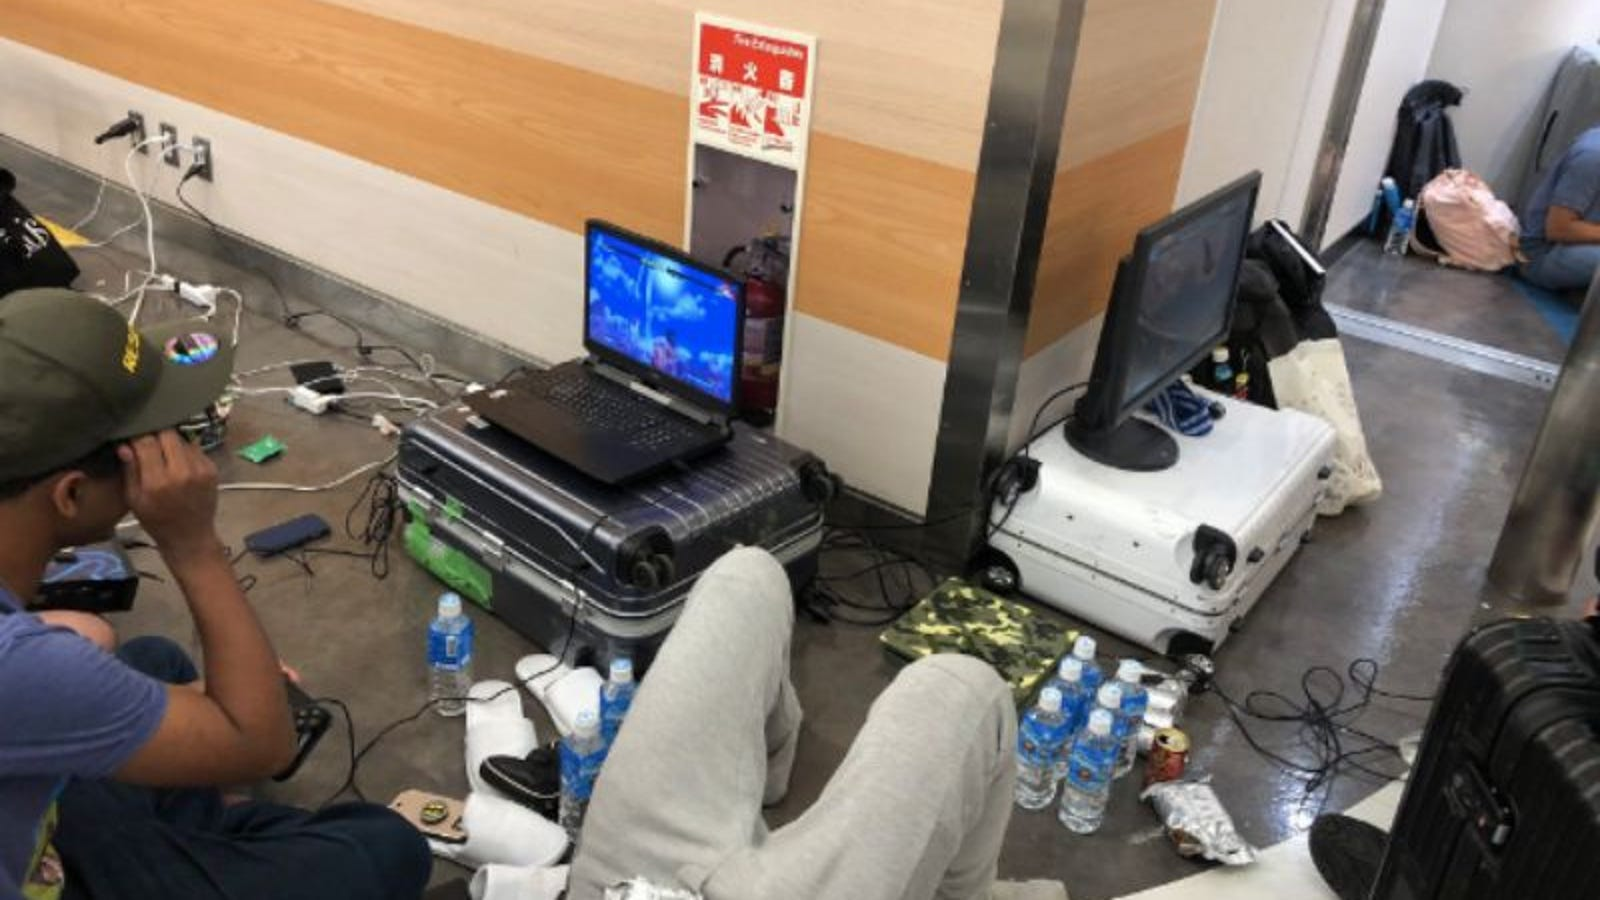 Stranded Pro Gamer Criticized For Using Airport's Electricity